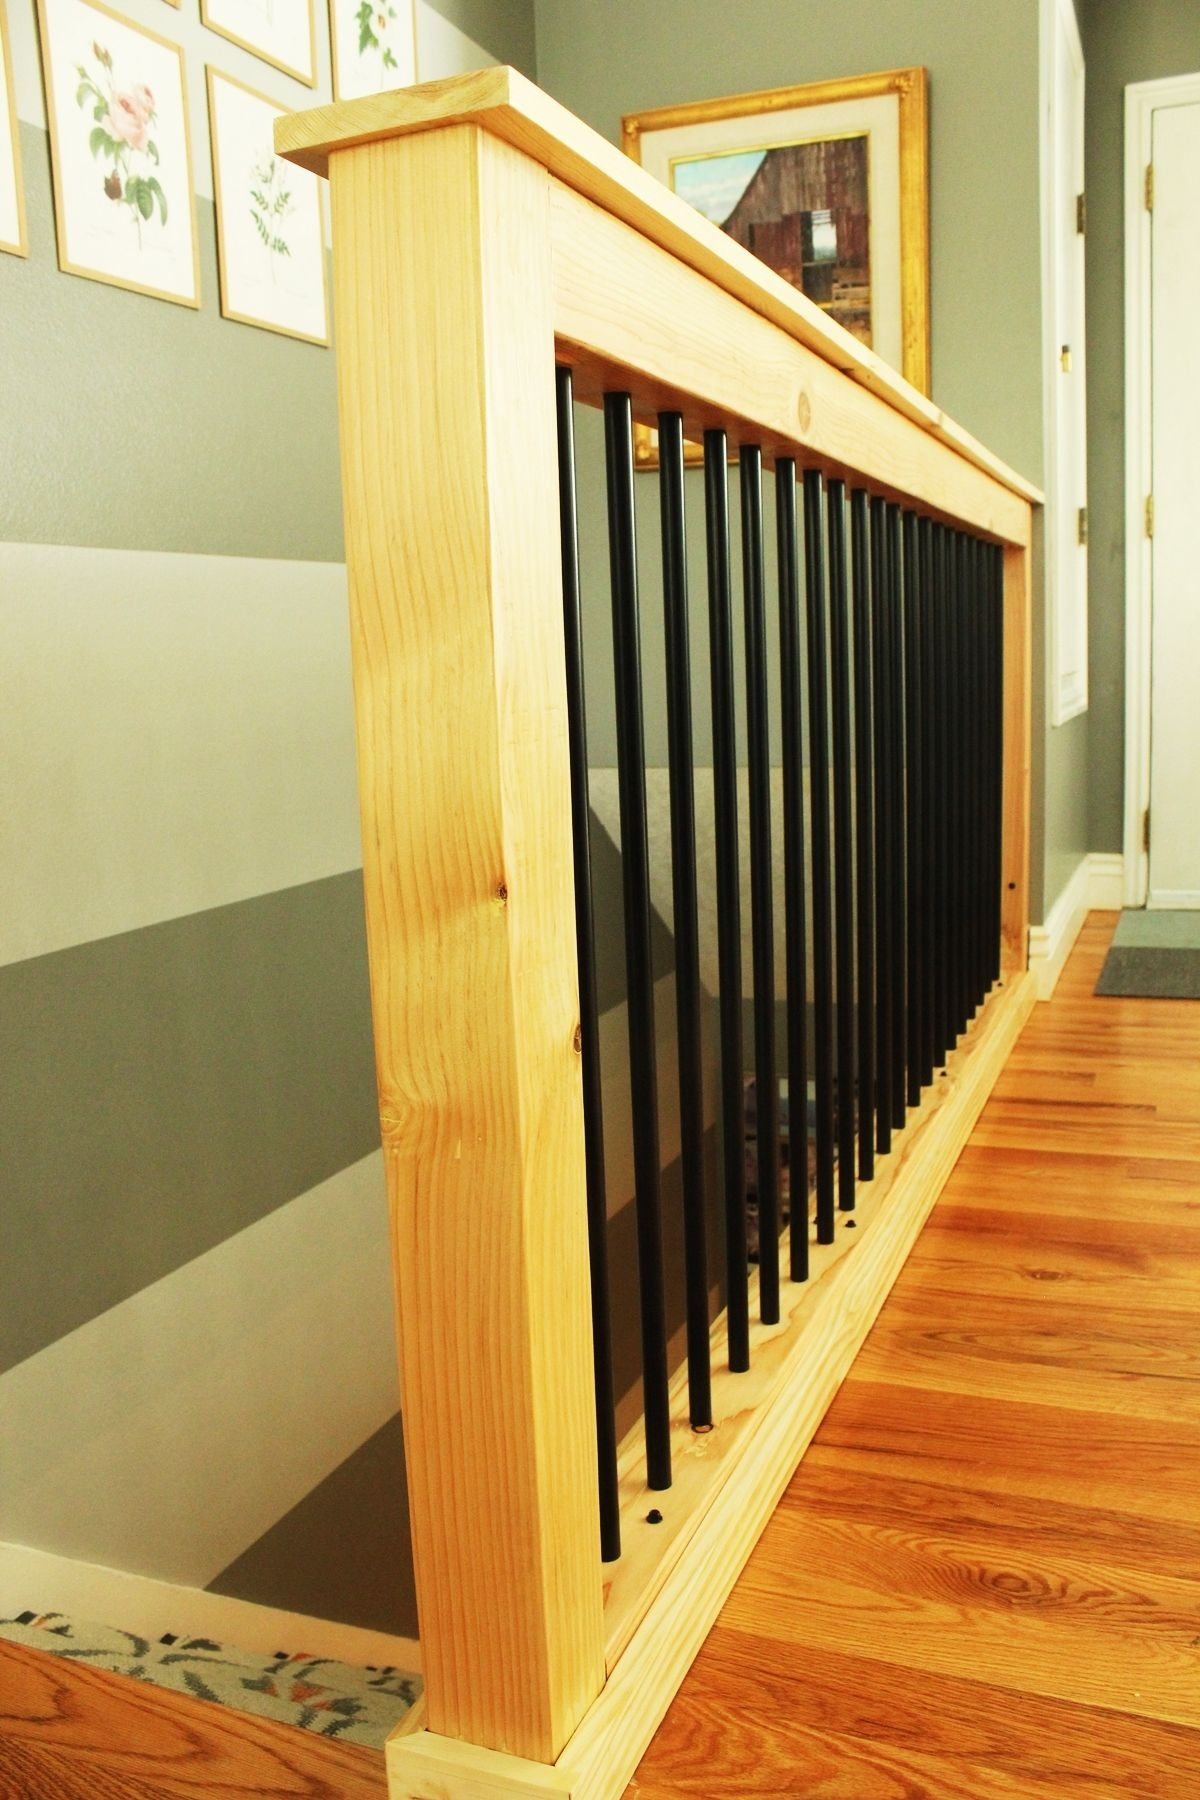 Diy Stair Handrail With Industrial Pipes And Wood | Diy Galvanized Pipe Handrail | Entrance | Abs Pipe | Curved Steel Pipe | Repurposed | Simple Pipe